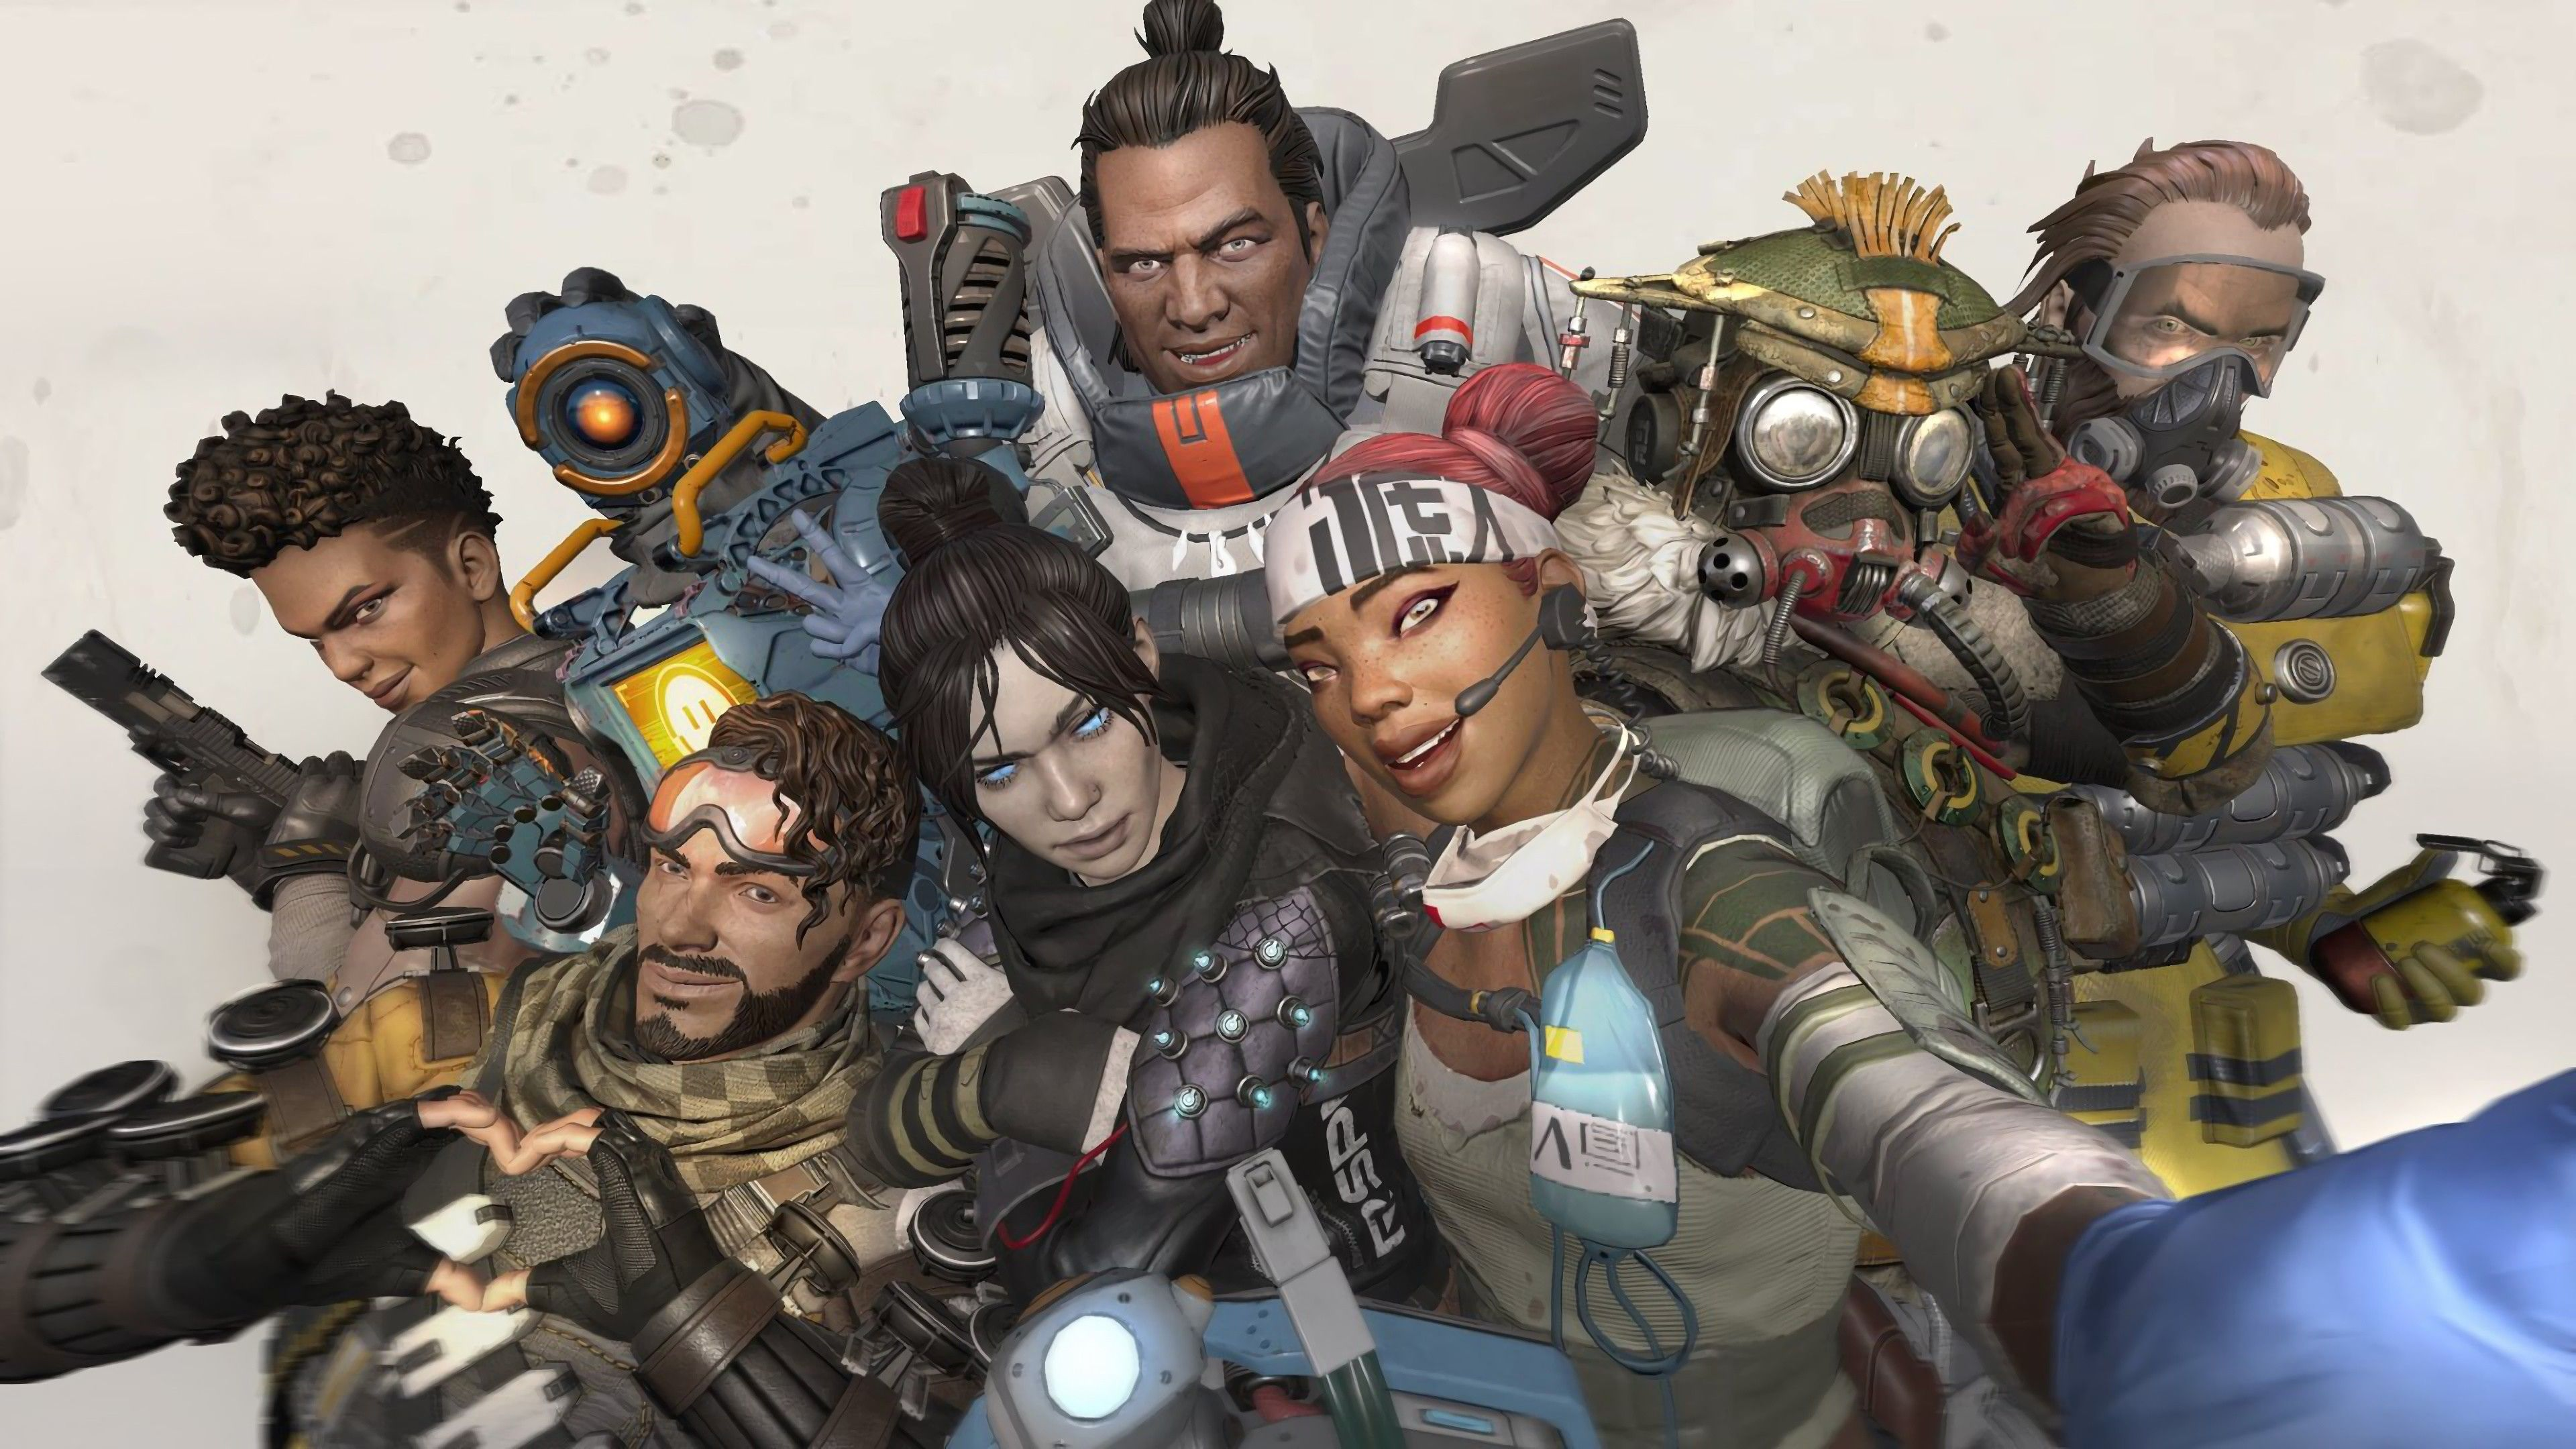 Apex Legends Characters Selfie 4k 2019 Apex wallpaper 4k